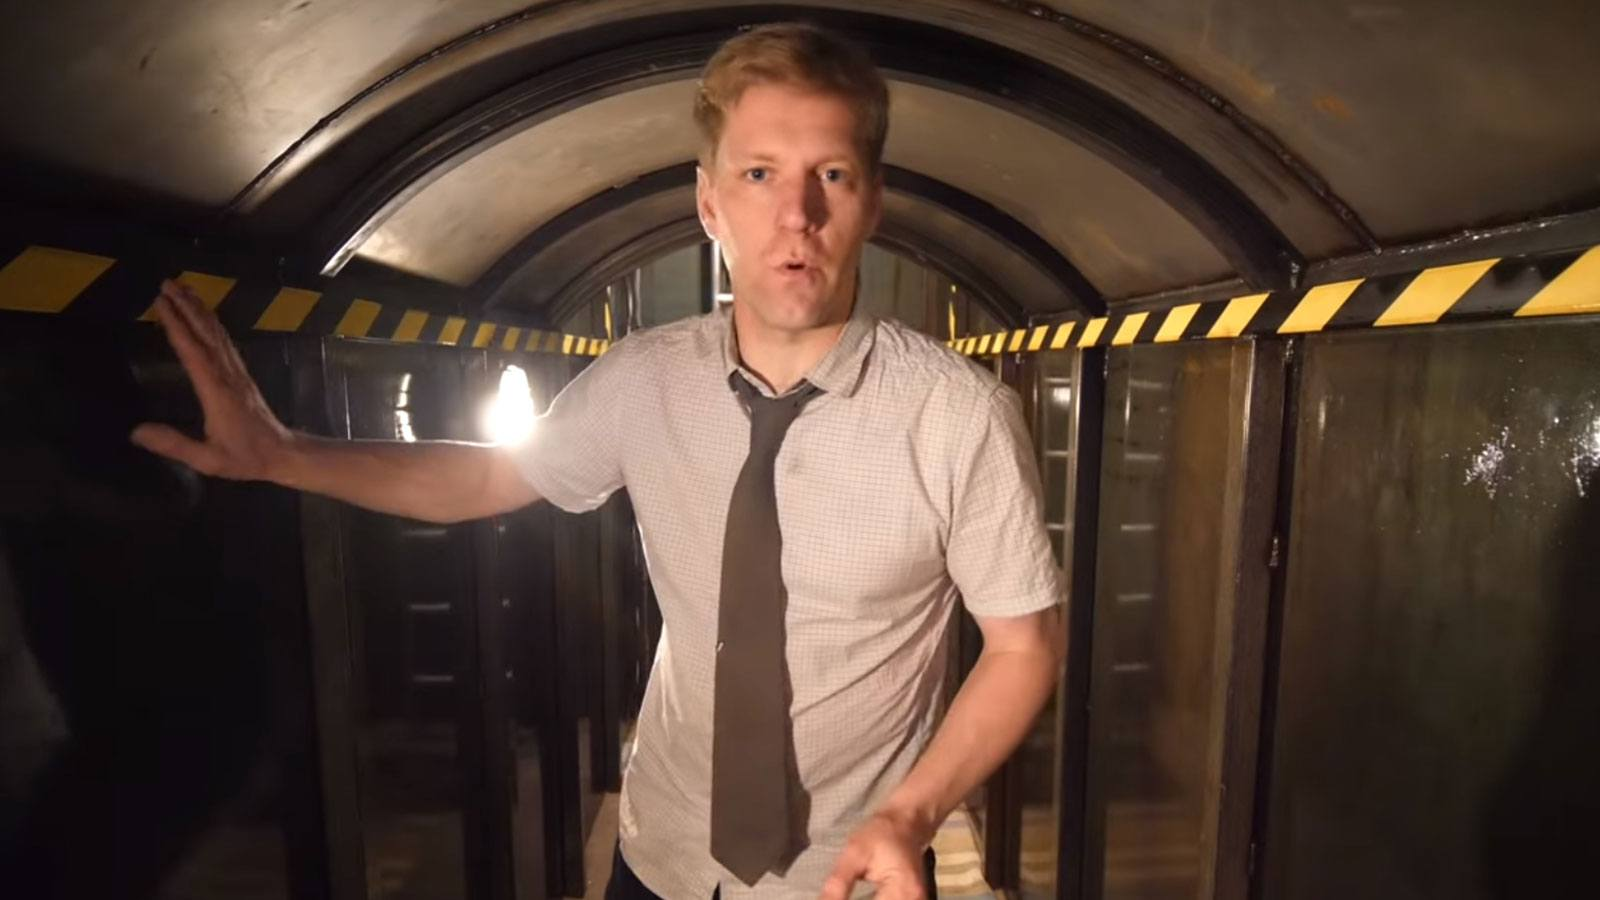 Colin Furze YouTube bunker